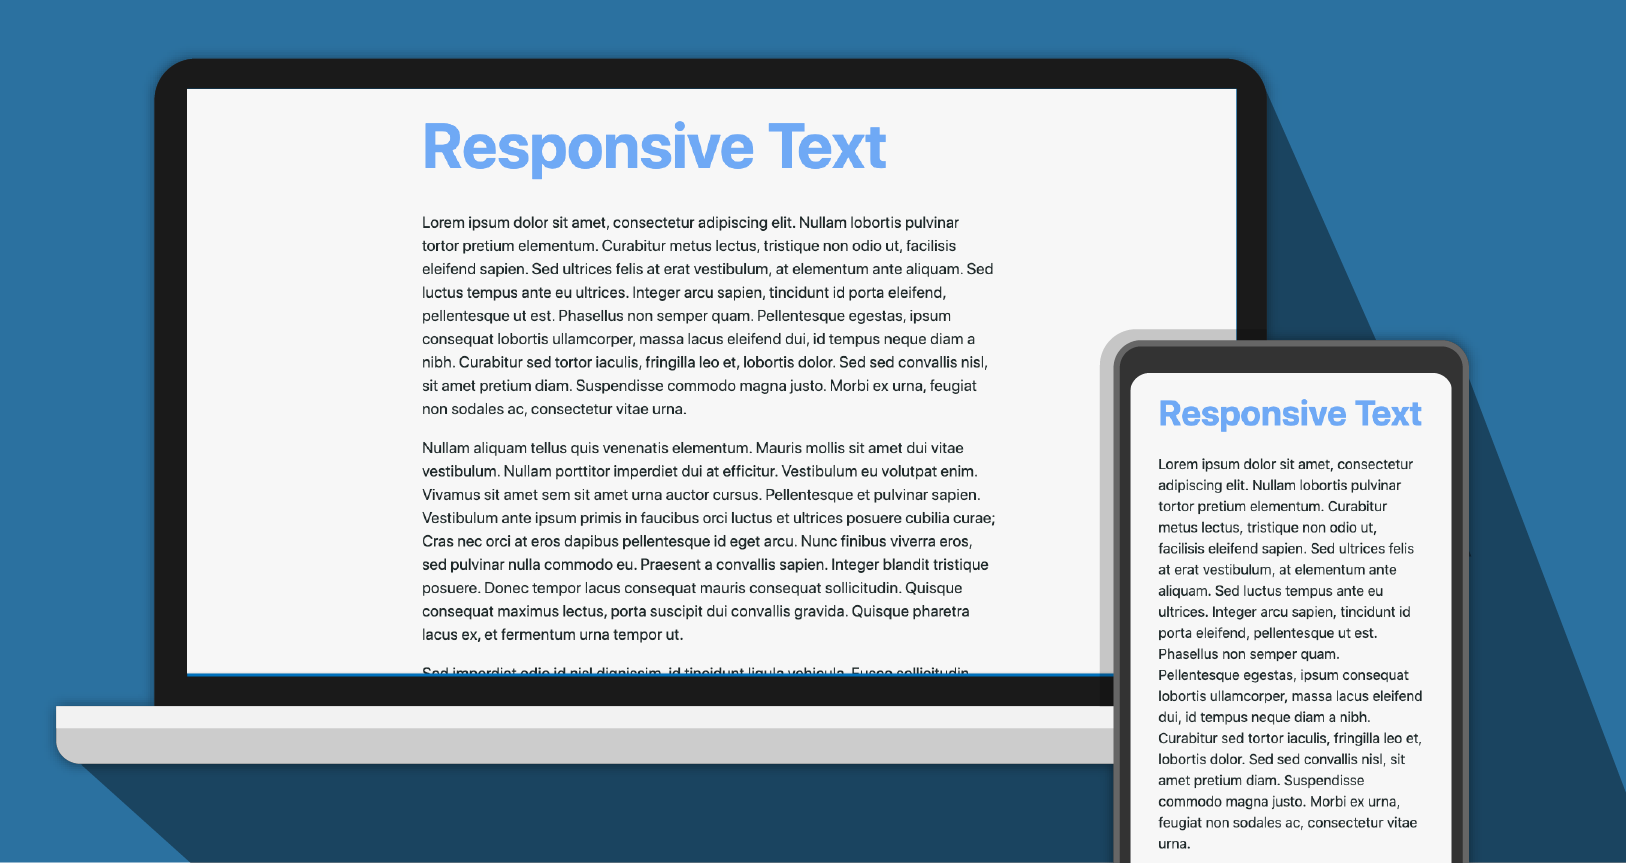 Responsive Text Building Readable Text Across Screen Sizes By Kelvin Tham Jul 2020 Ux Collective